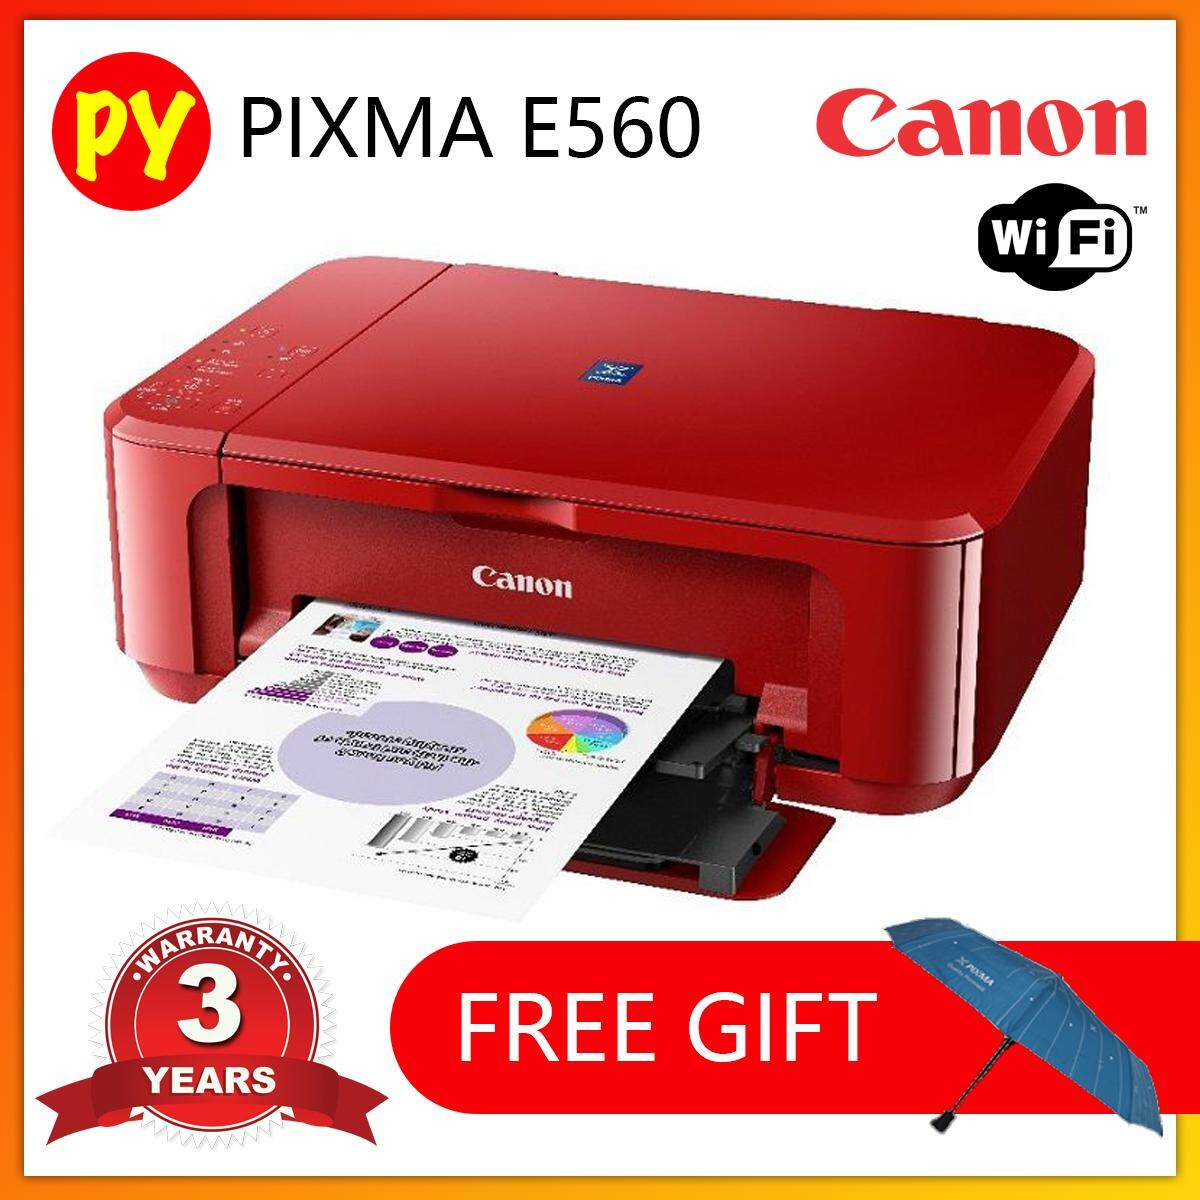 Canon PIXMA E560 / E560R All-In-One (Print, Scan, Copy, Wifi) Printer - Now comes with RED! Red